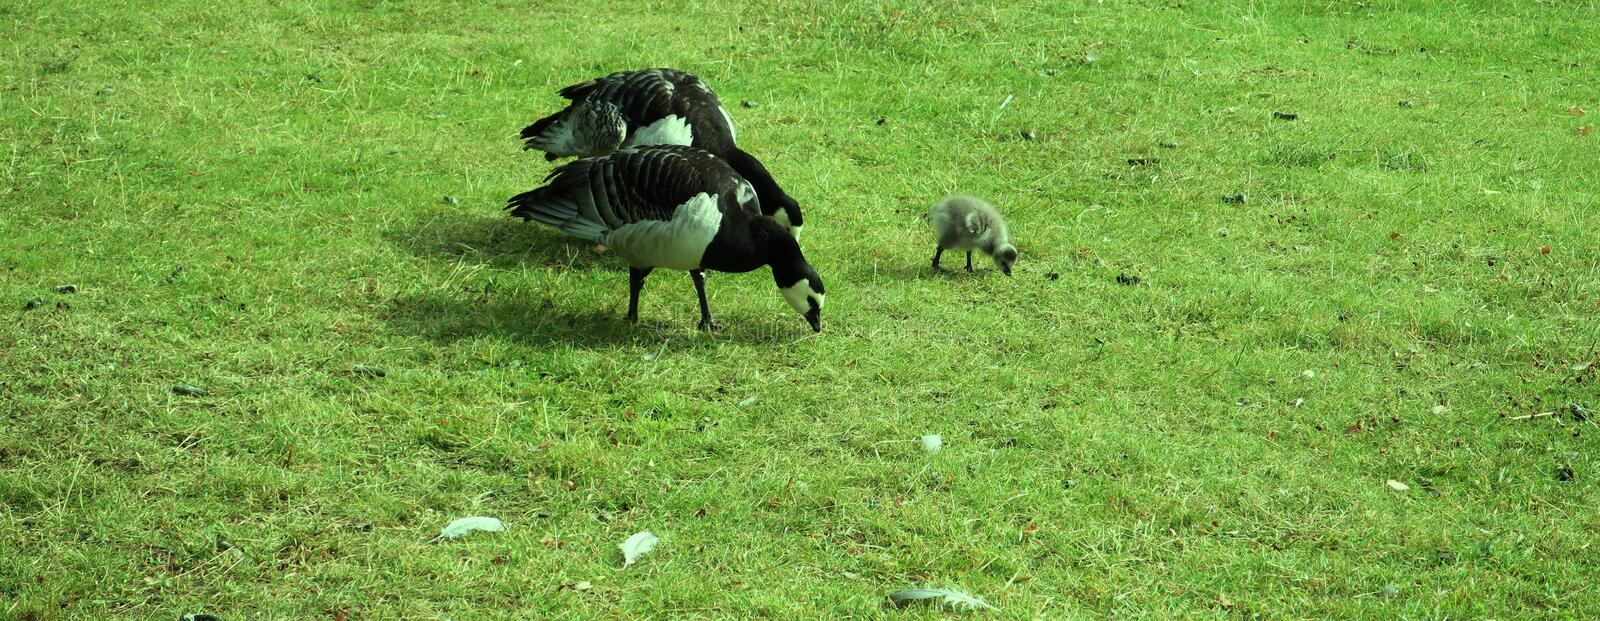 Barnacle geese branta leucopsis with chick. Sweden stock photo